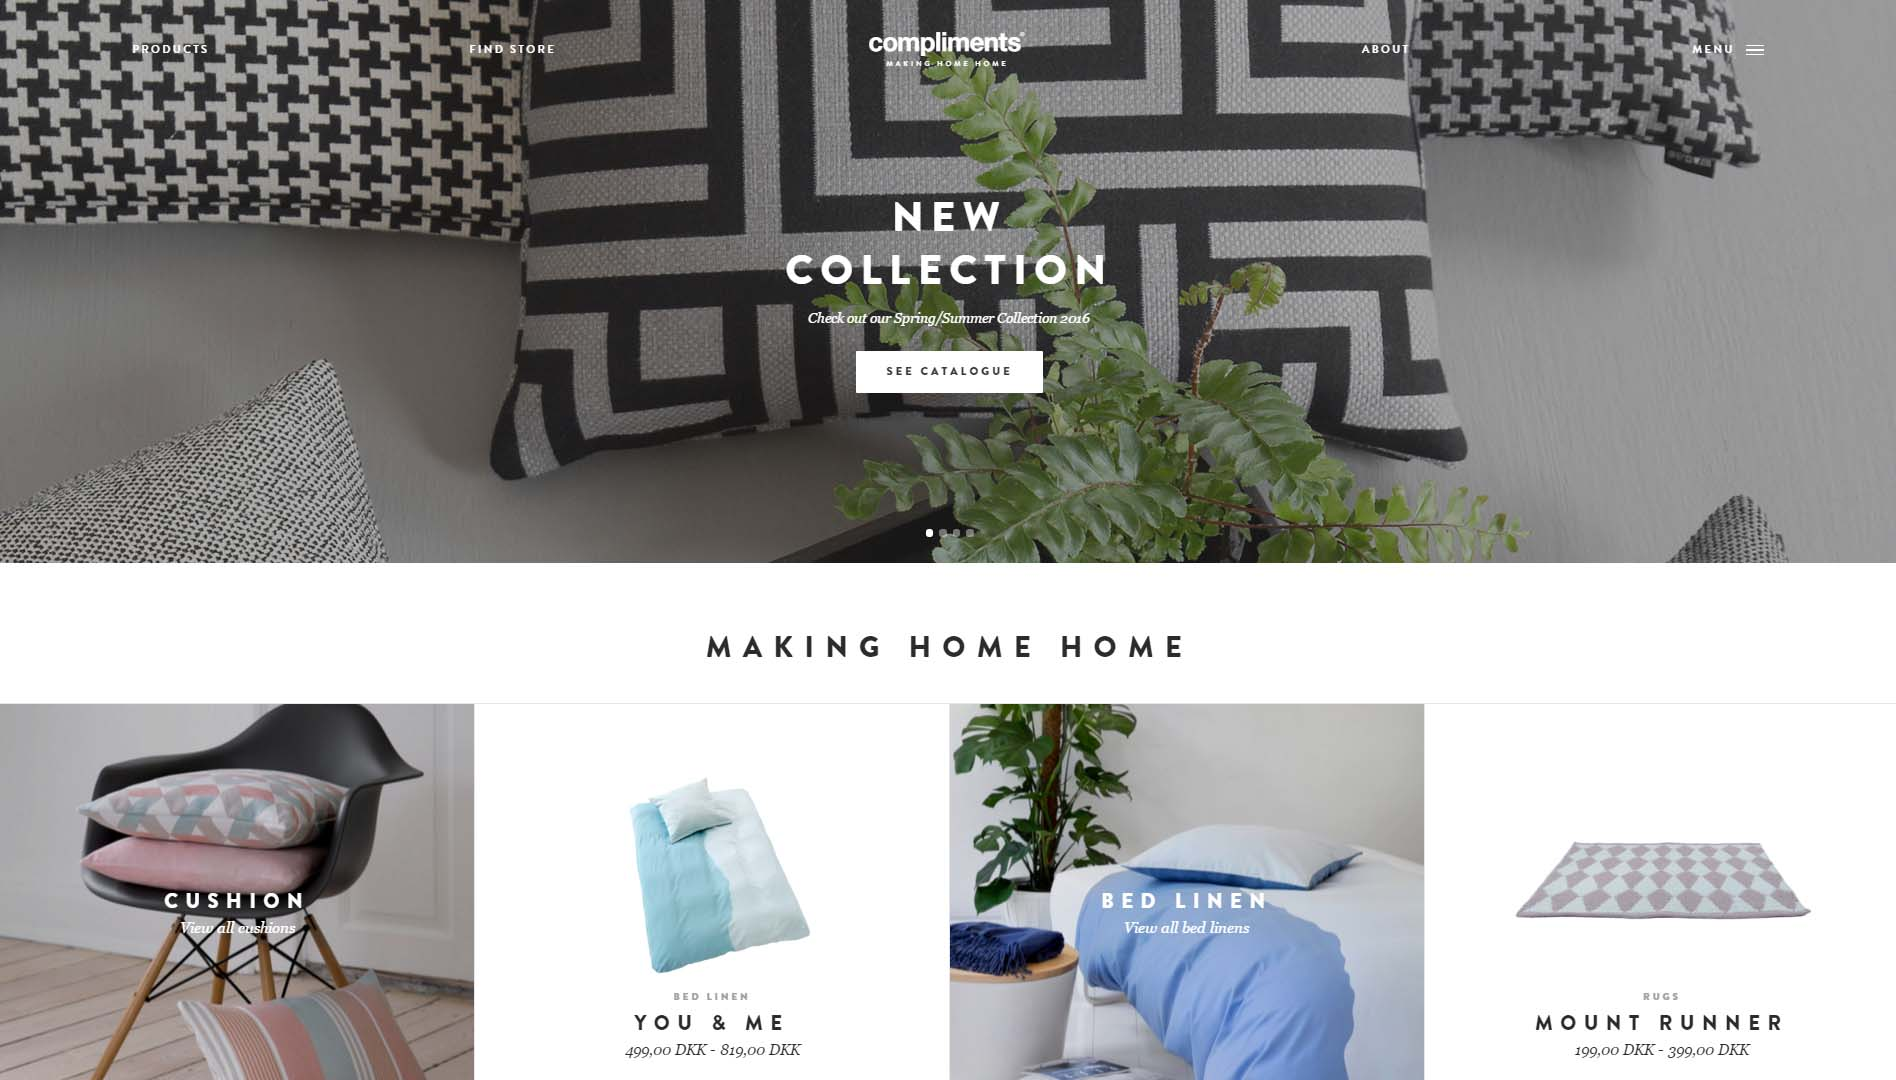 new collection website homepage